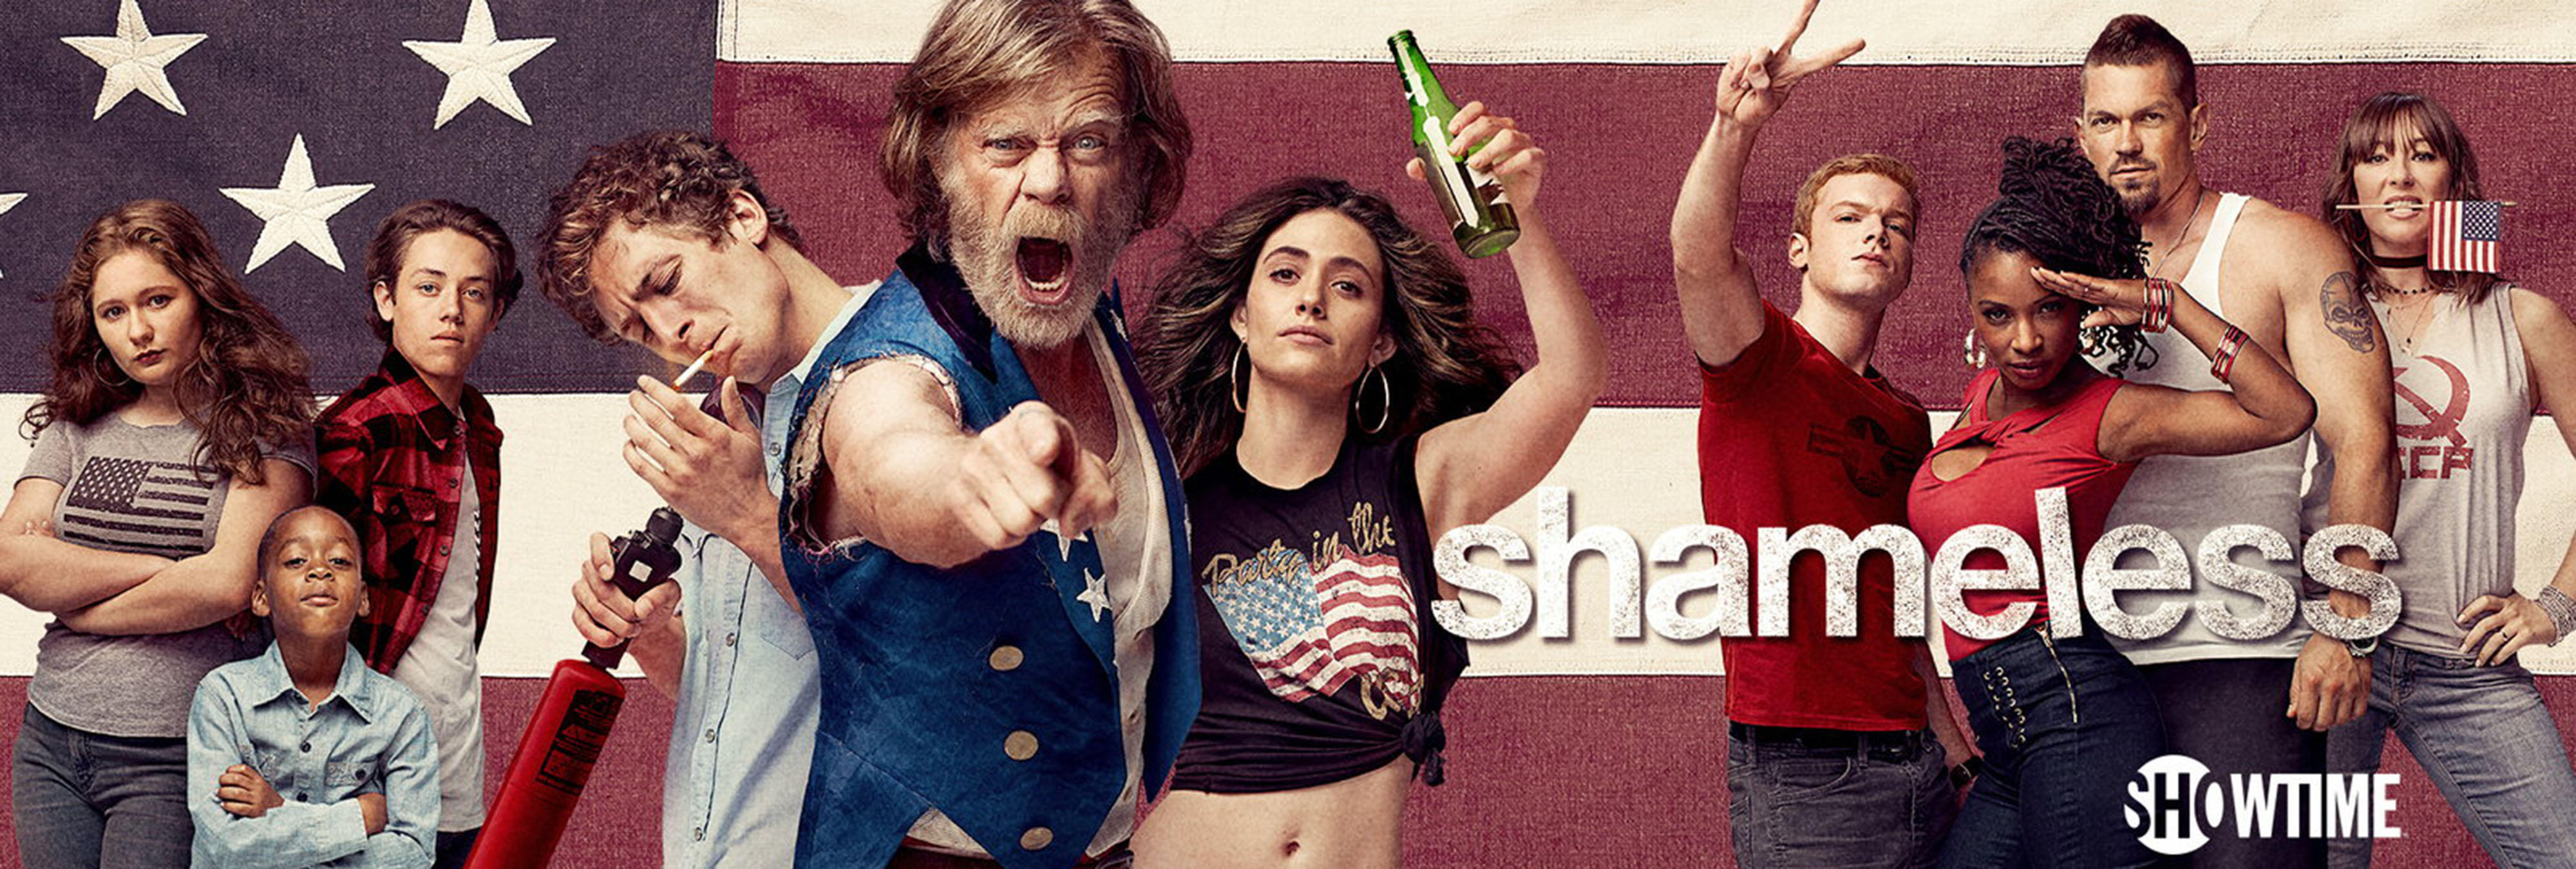 The official site of the SHOWTIME Original Series Shameless Find out about new episodes watch previews go behind the scenes and more